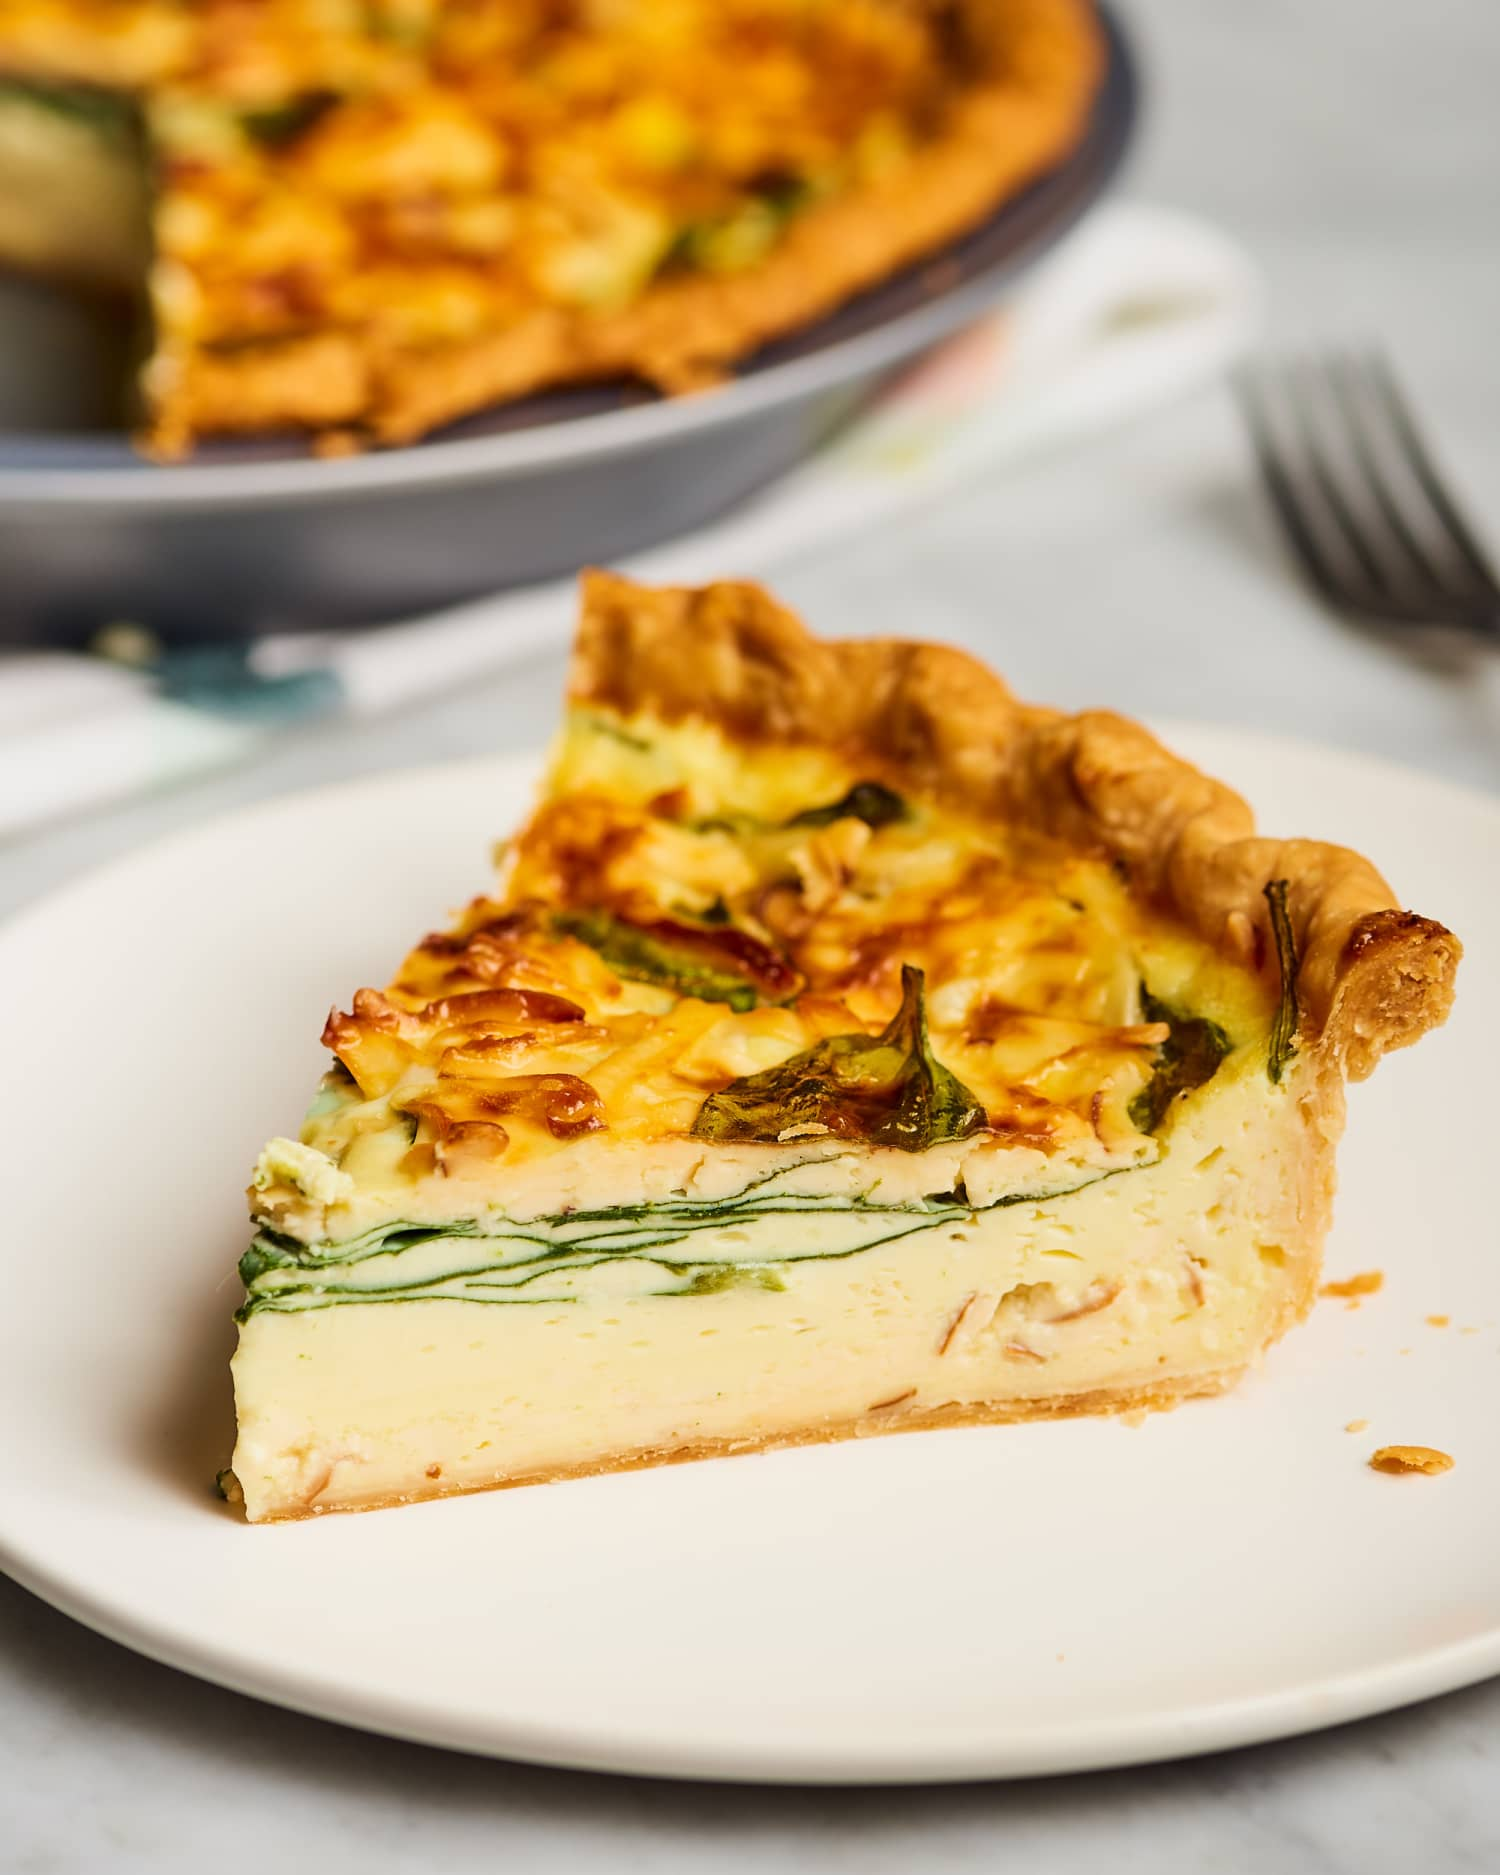 Cheesy Spinach Quiche Is a Fuss-Free Meal